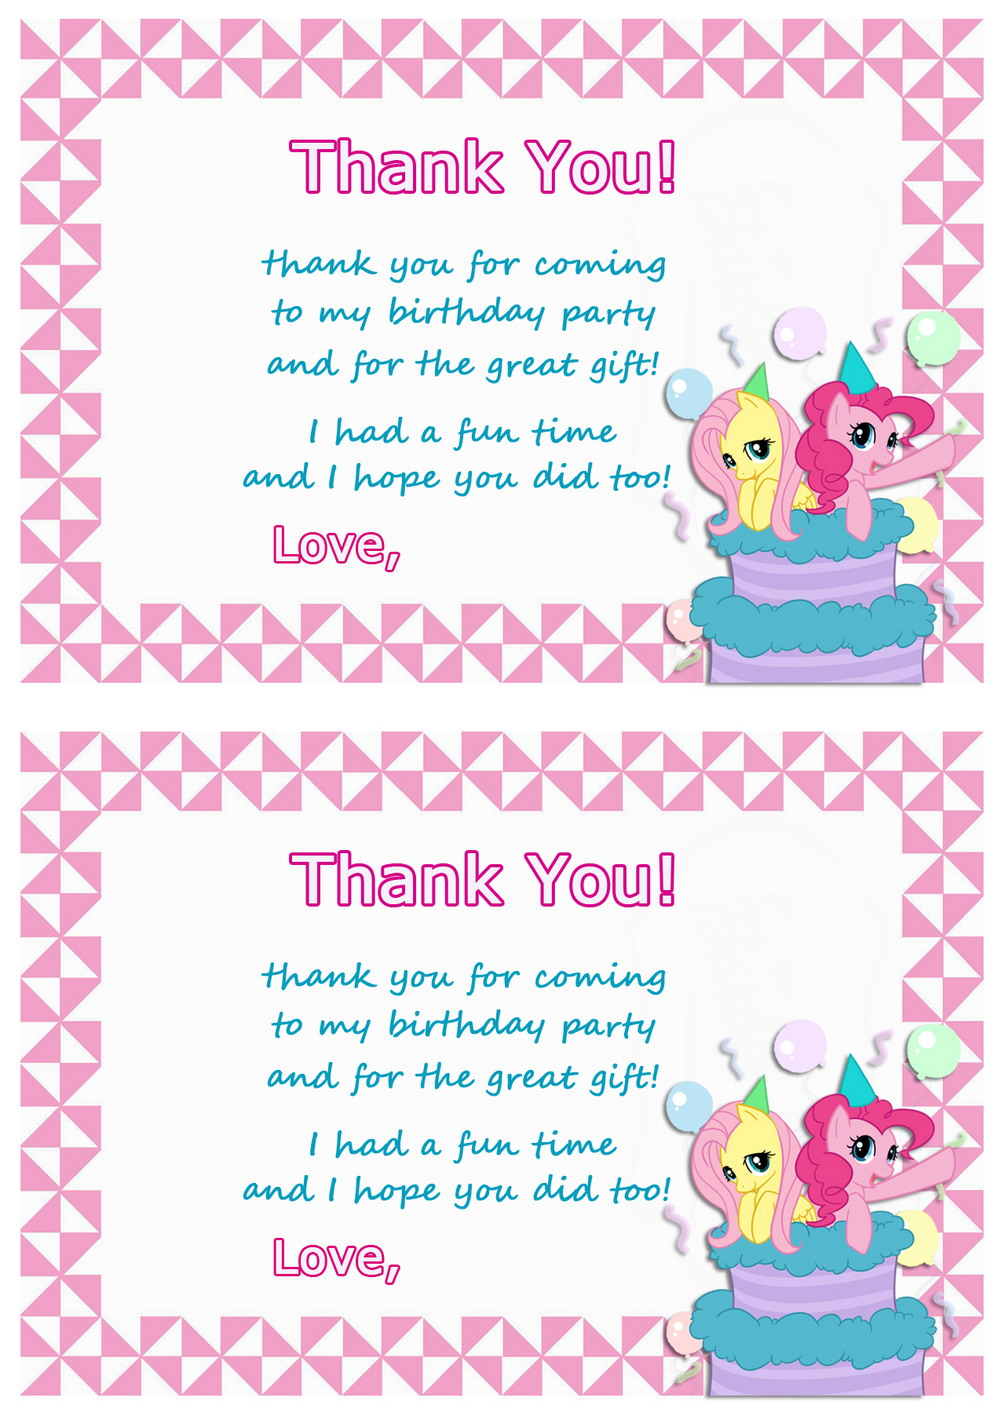 graphic regarding My Little Pony Printable Birthday Cards referred to as My Tiny Pony Thank by yourself Playing cards Birthday Printable